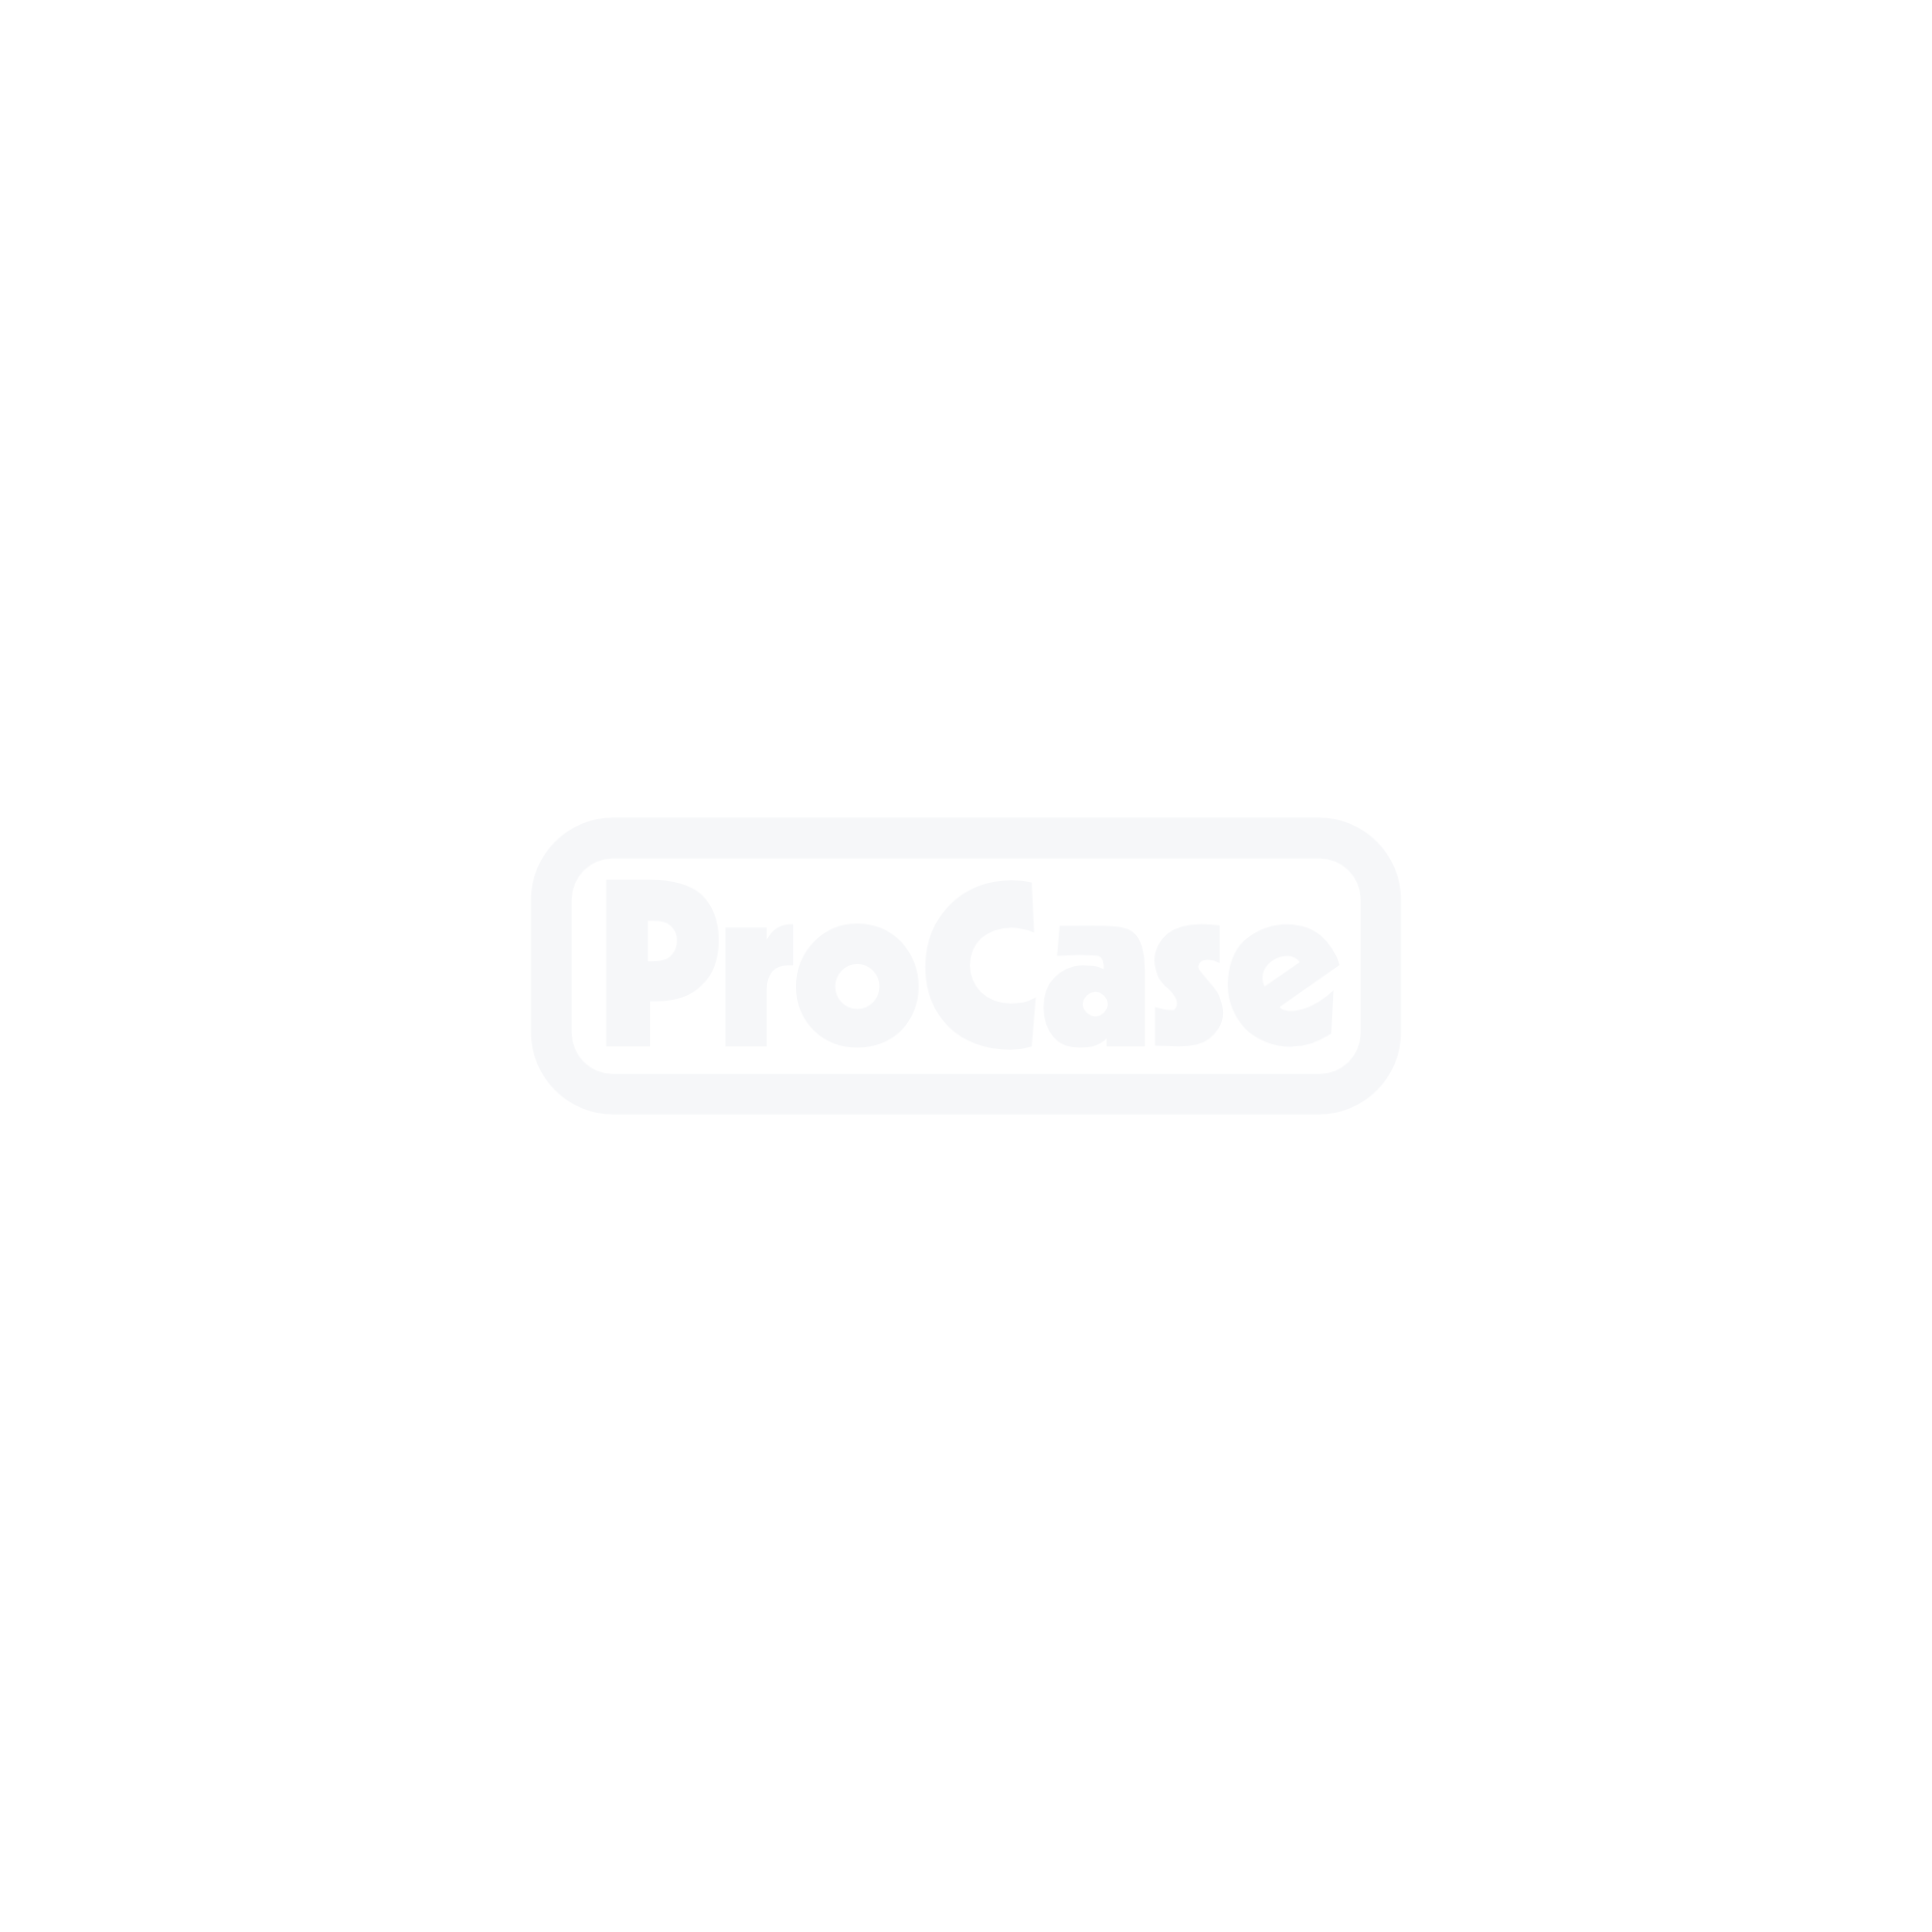 Digitales Min Max Thermometer